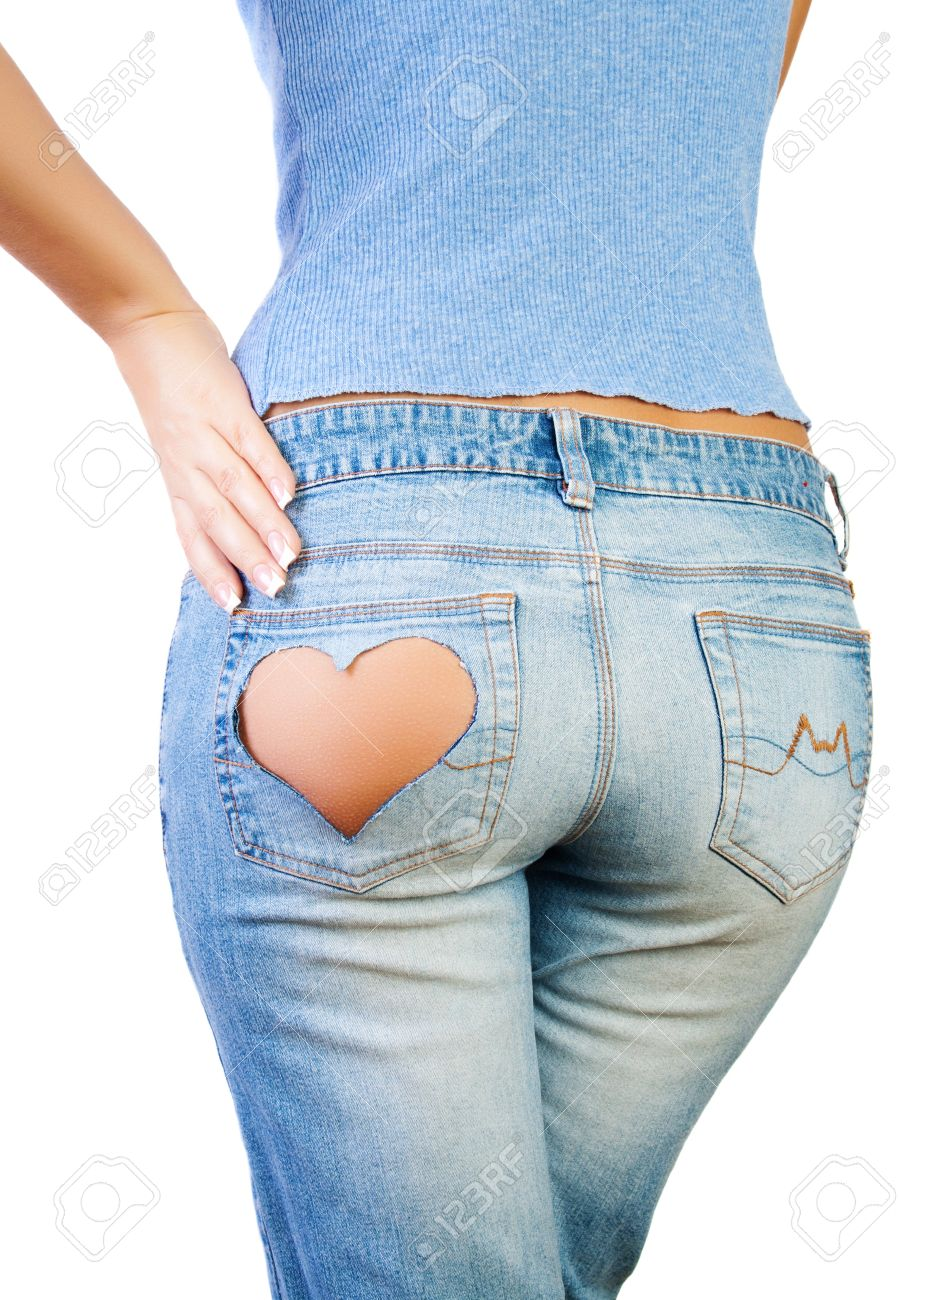 Girl In Jeans With Heart-shaped Hole On The Buttock, Hand On ...